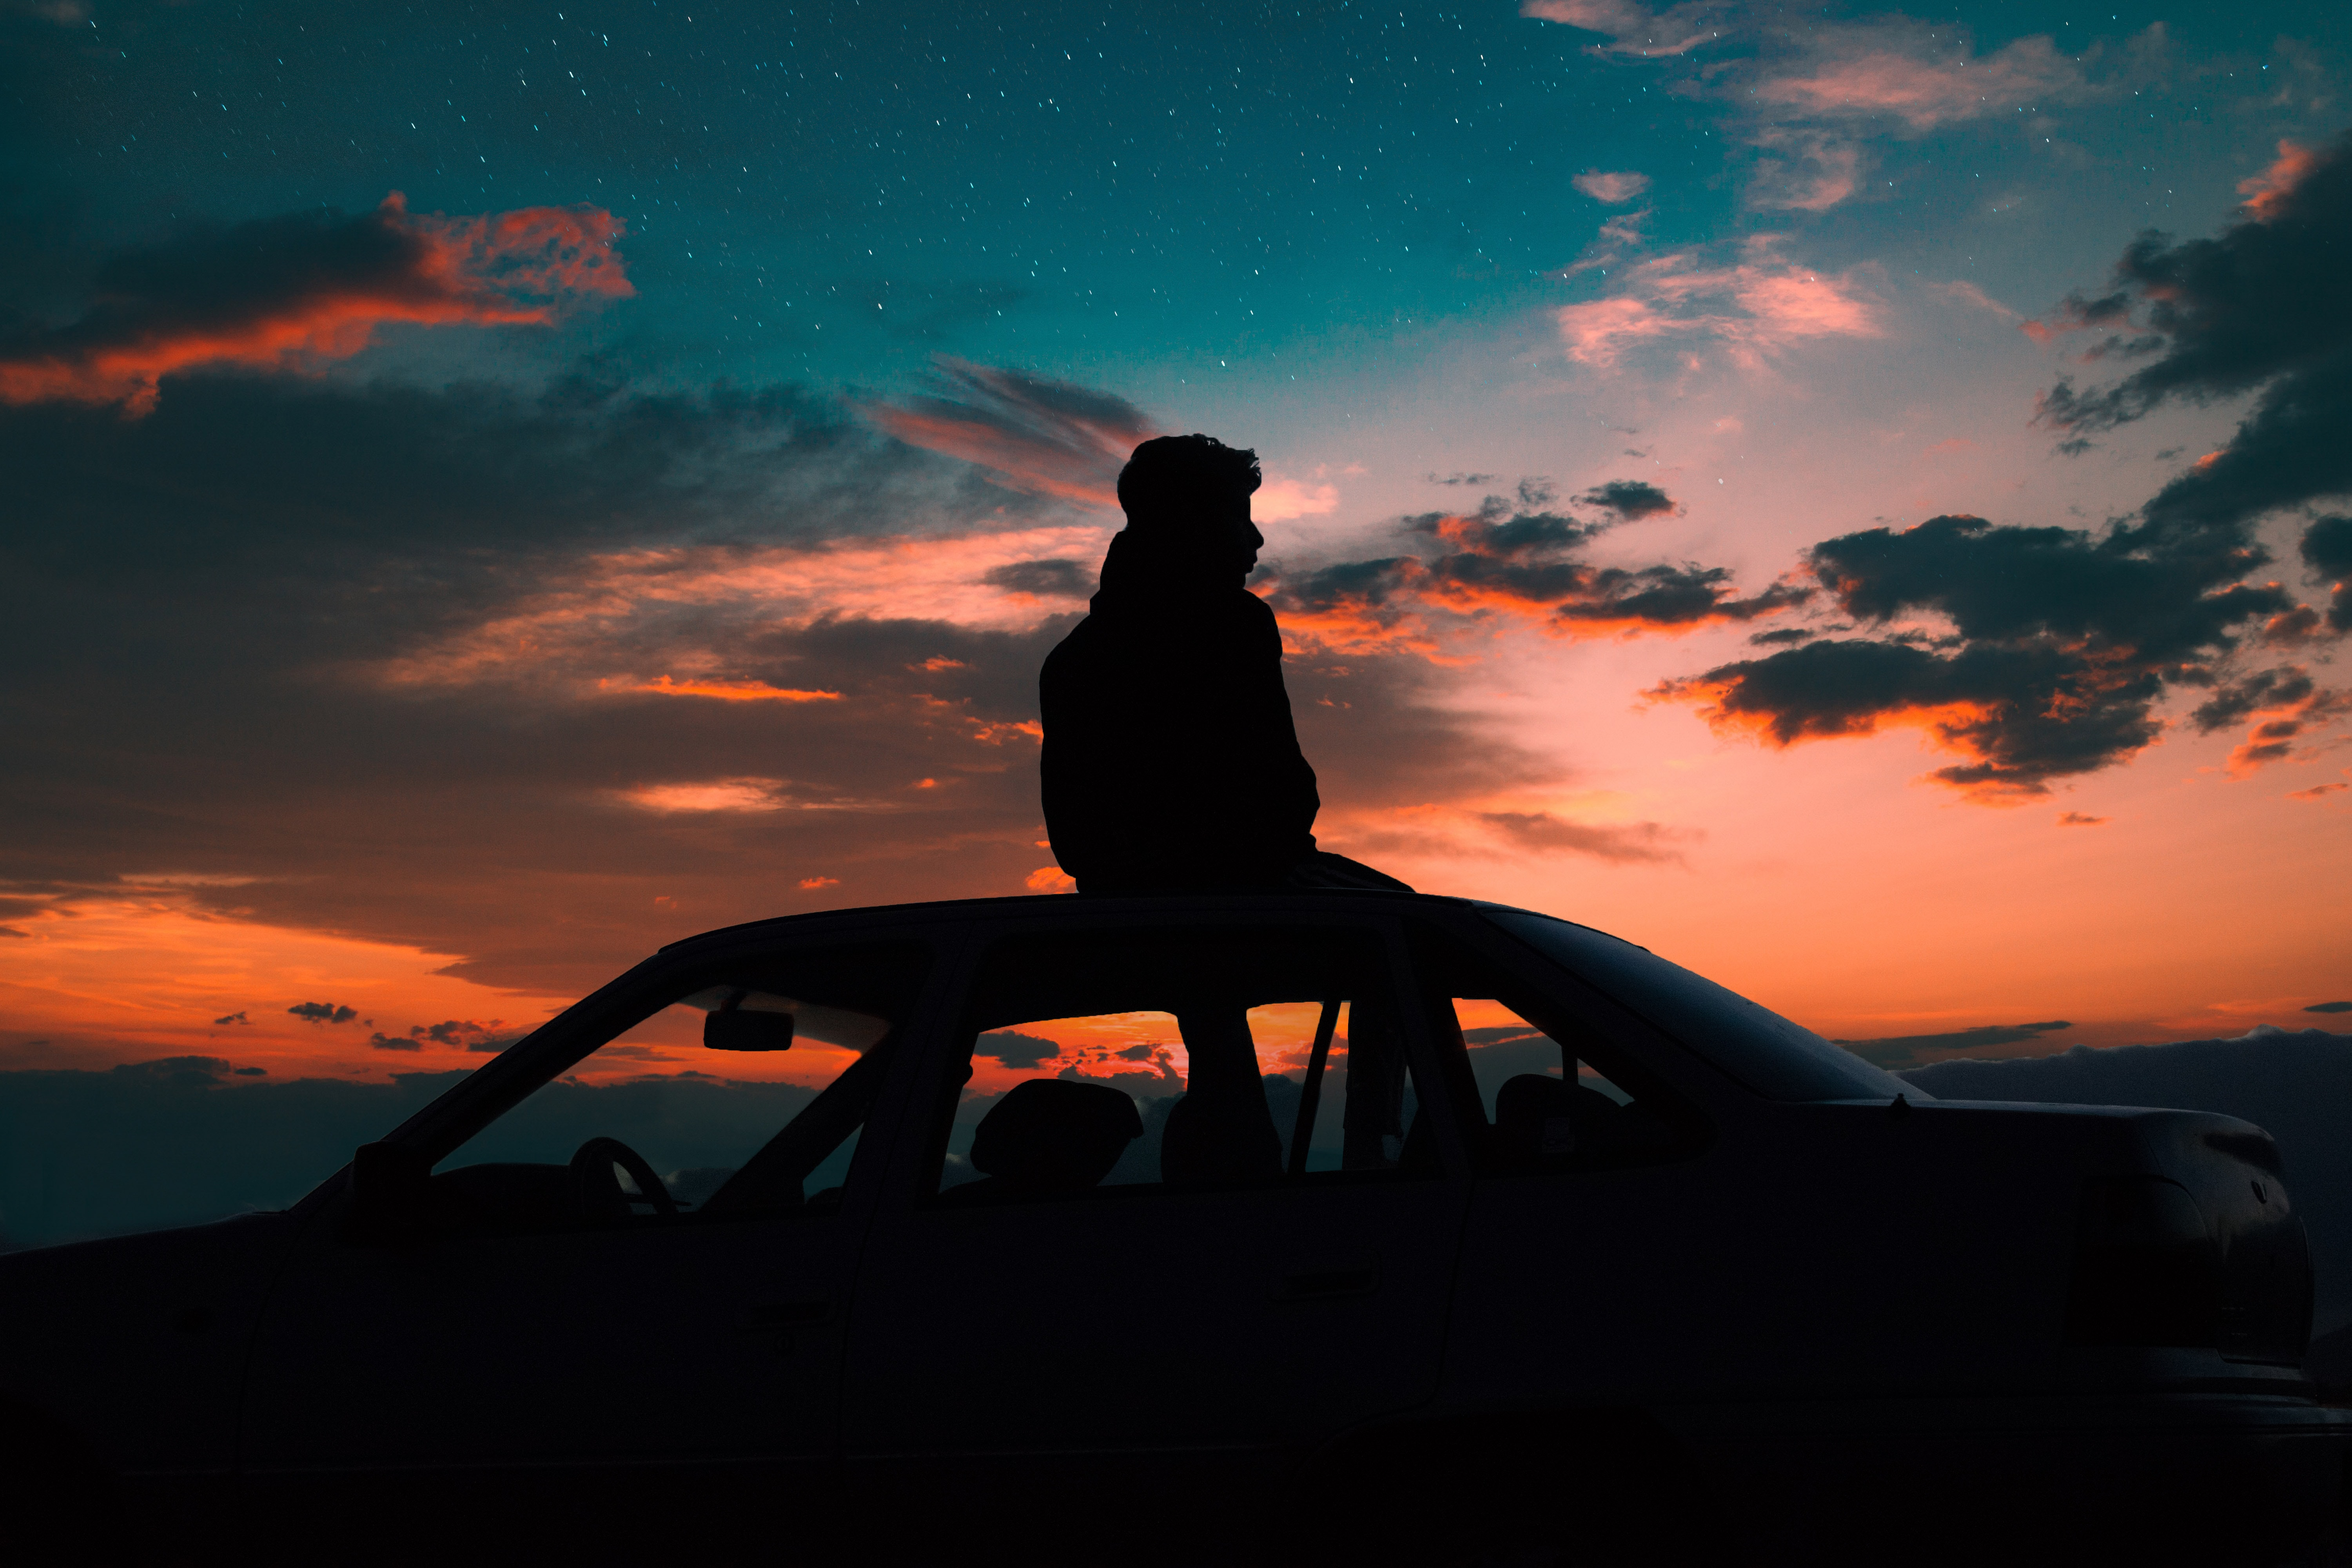 silhouette of man sitting on car roof